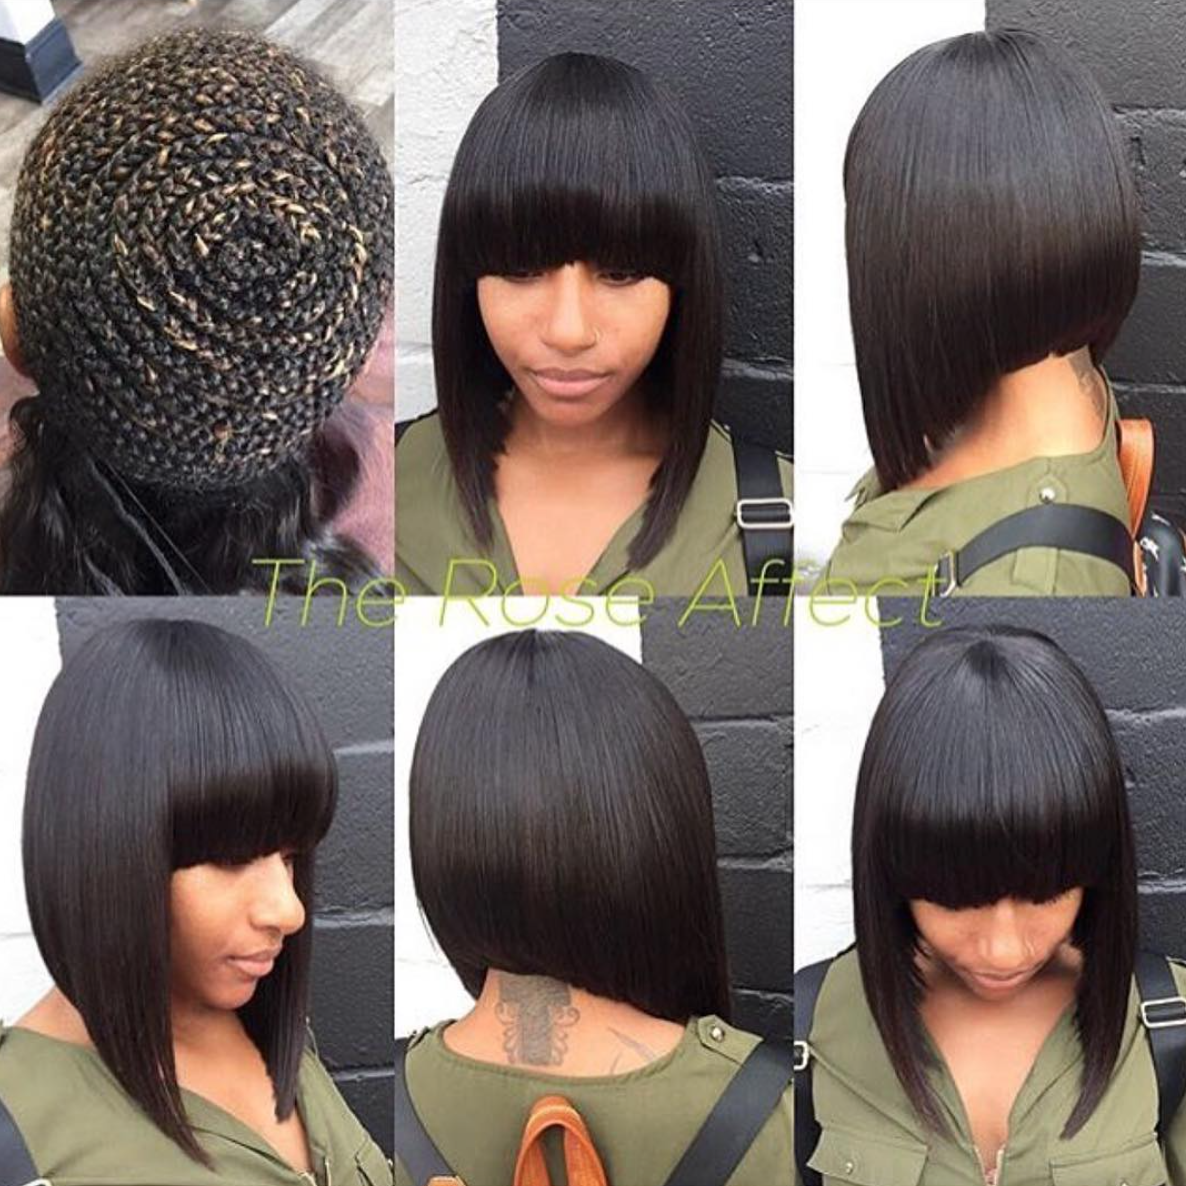 nice sew in by @the_rose_affect - https://blackhairinformation